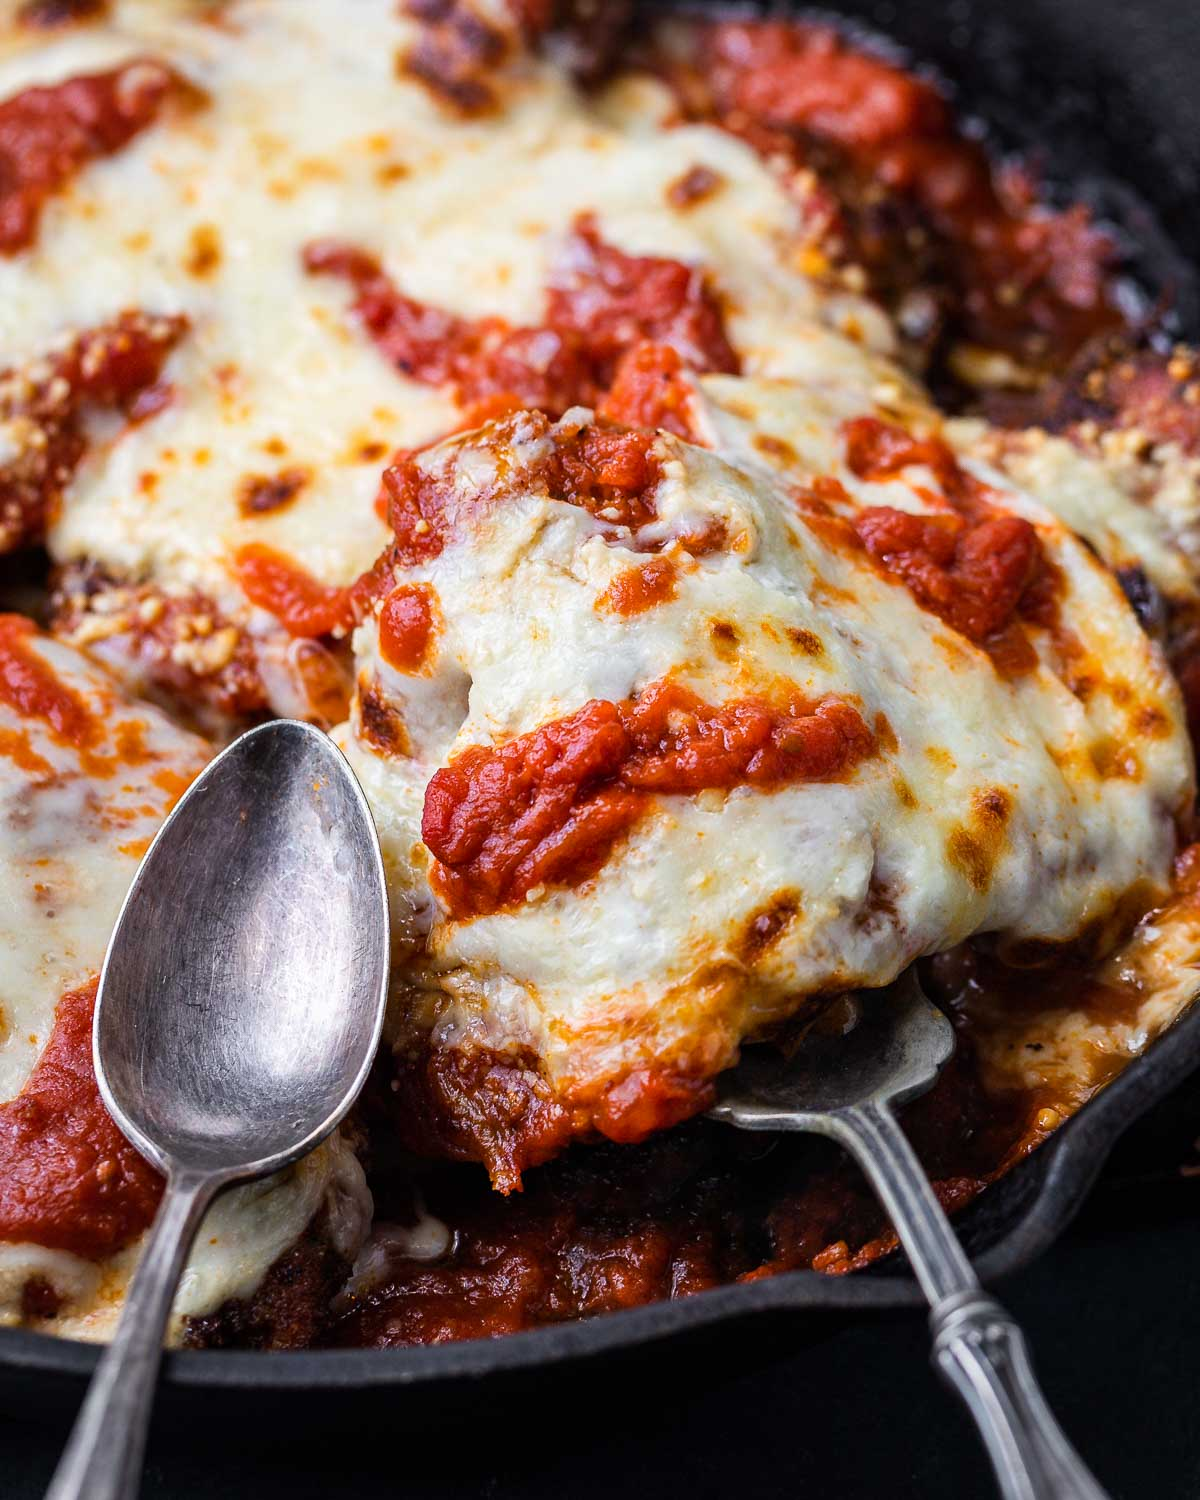 Chicken parmigiana scooped out of pan.